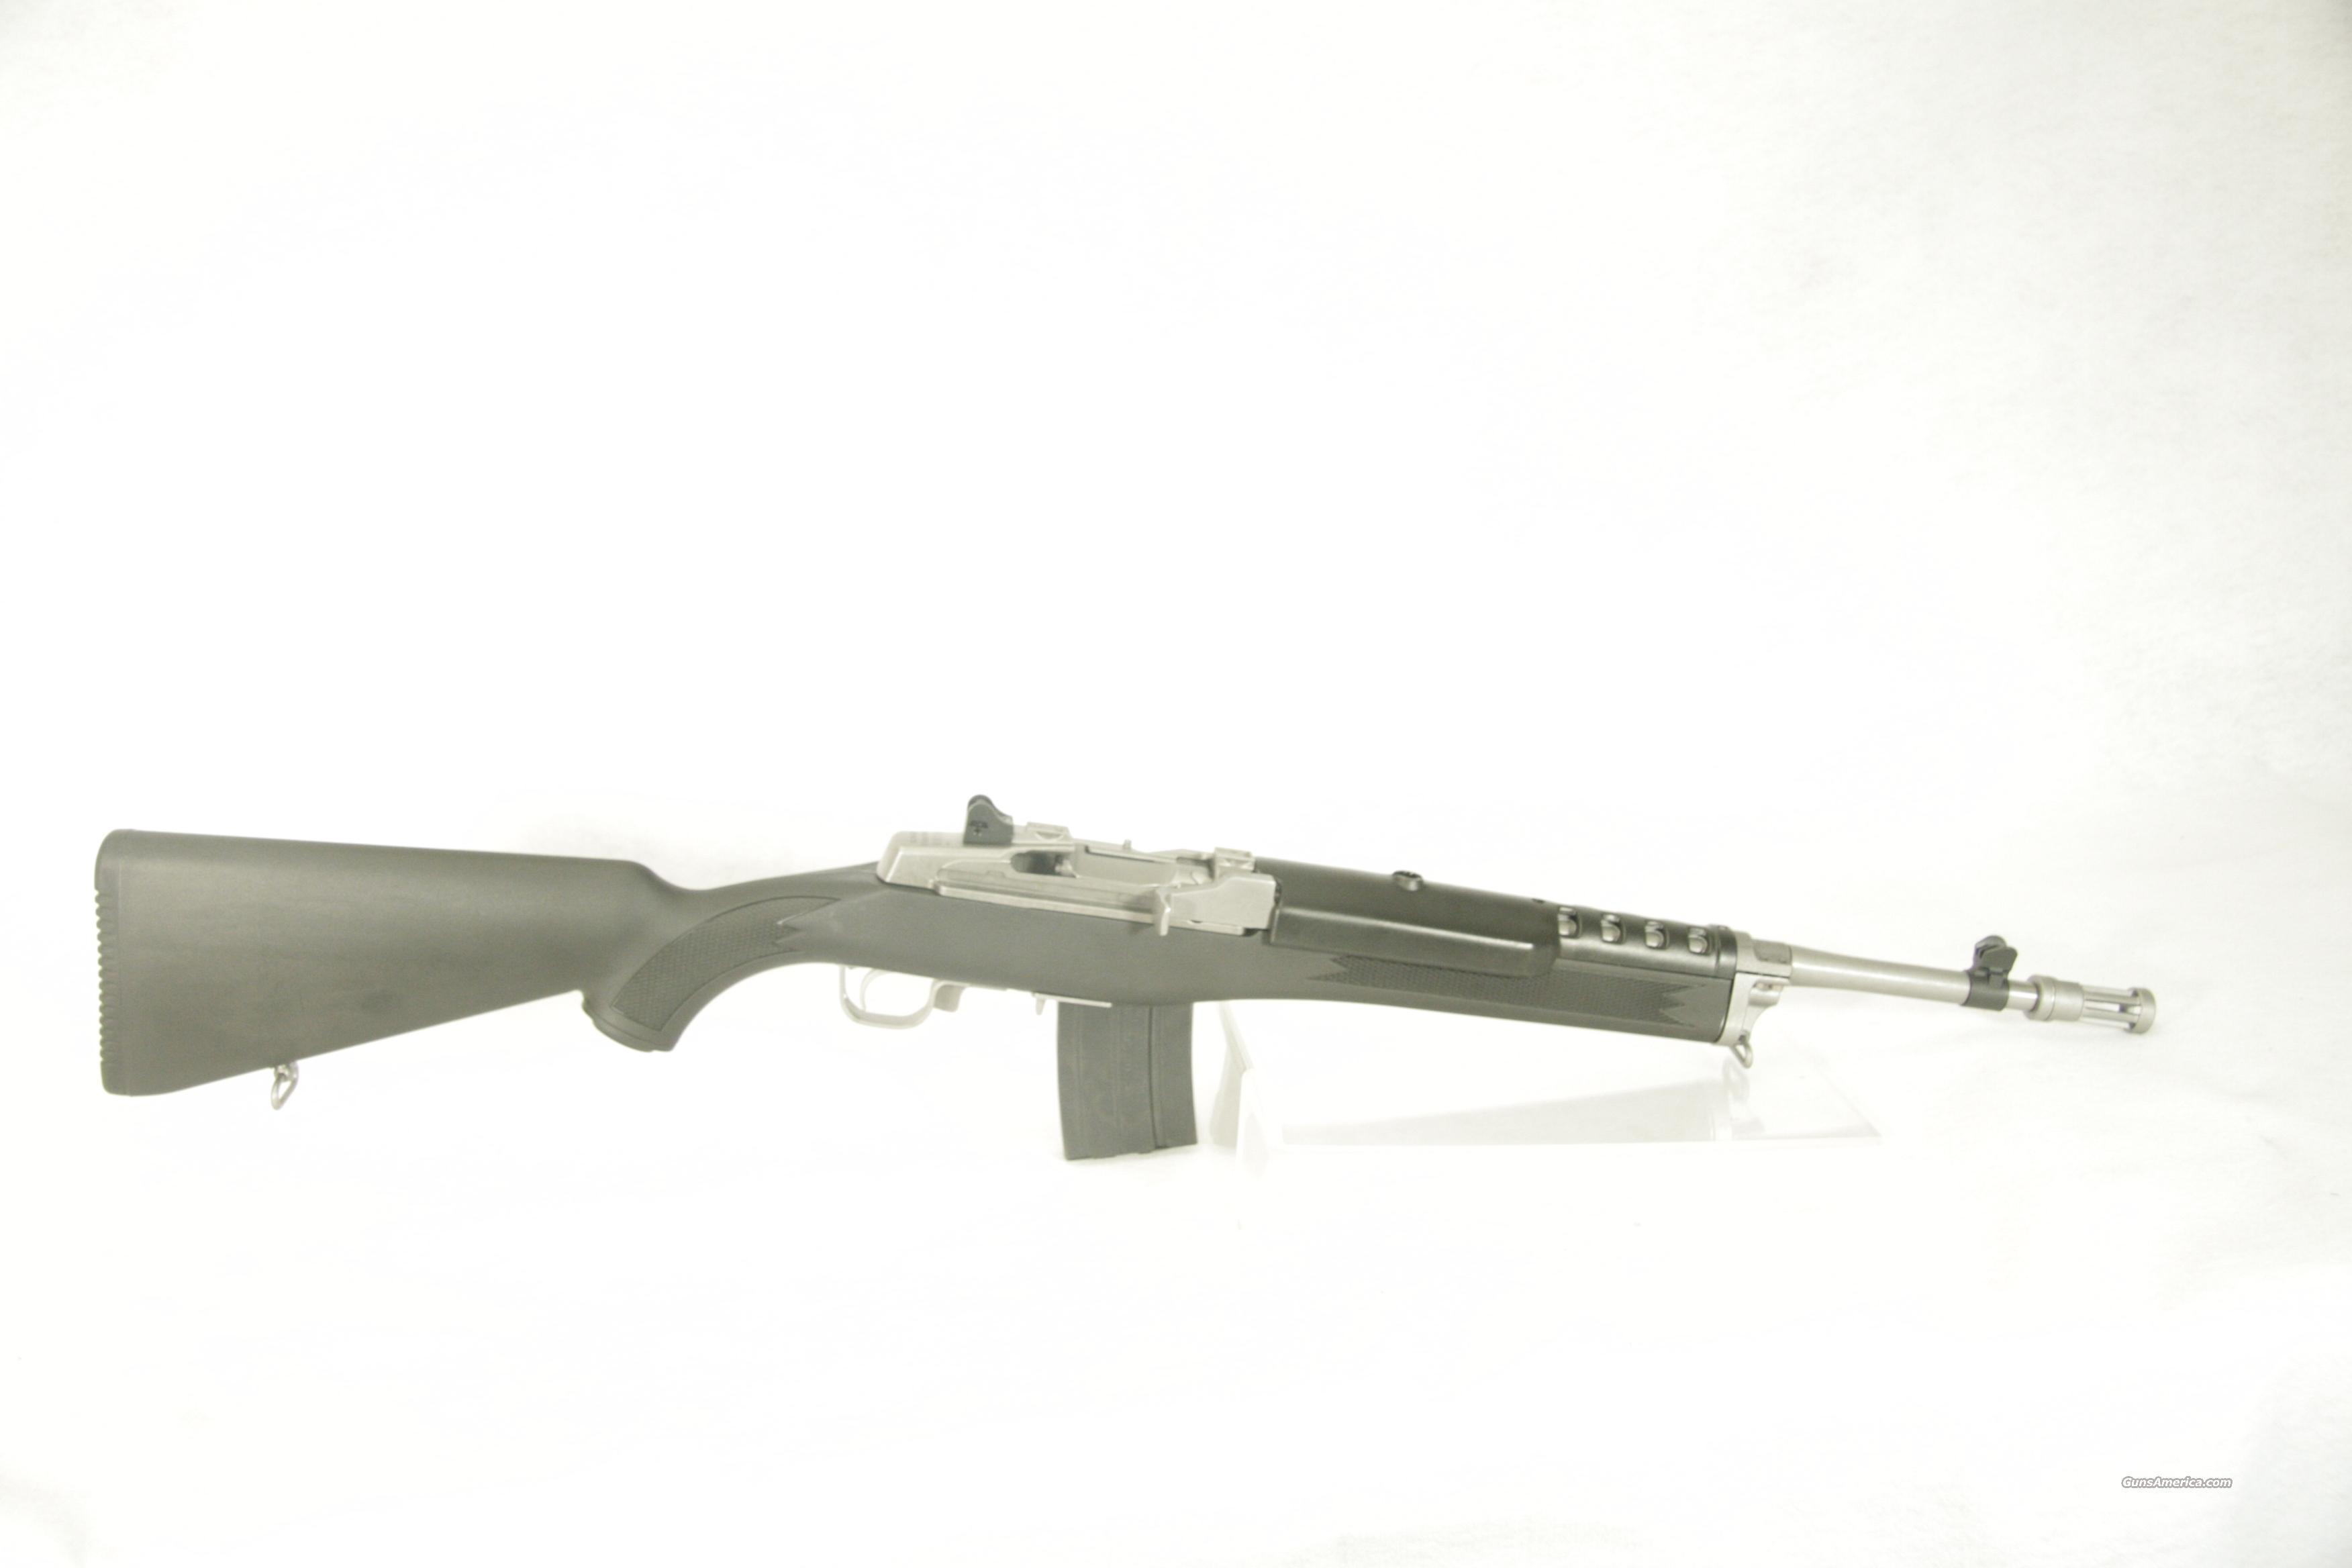 Ruger Mini 14 .223 Tactical SS  Guns > Rifles > Ruger Rifles > Mini-14 Type